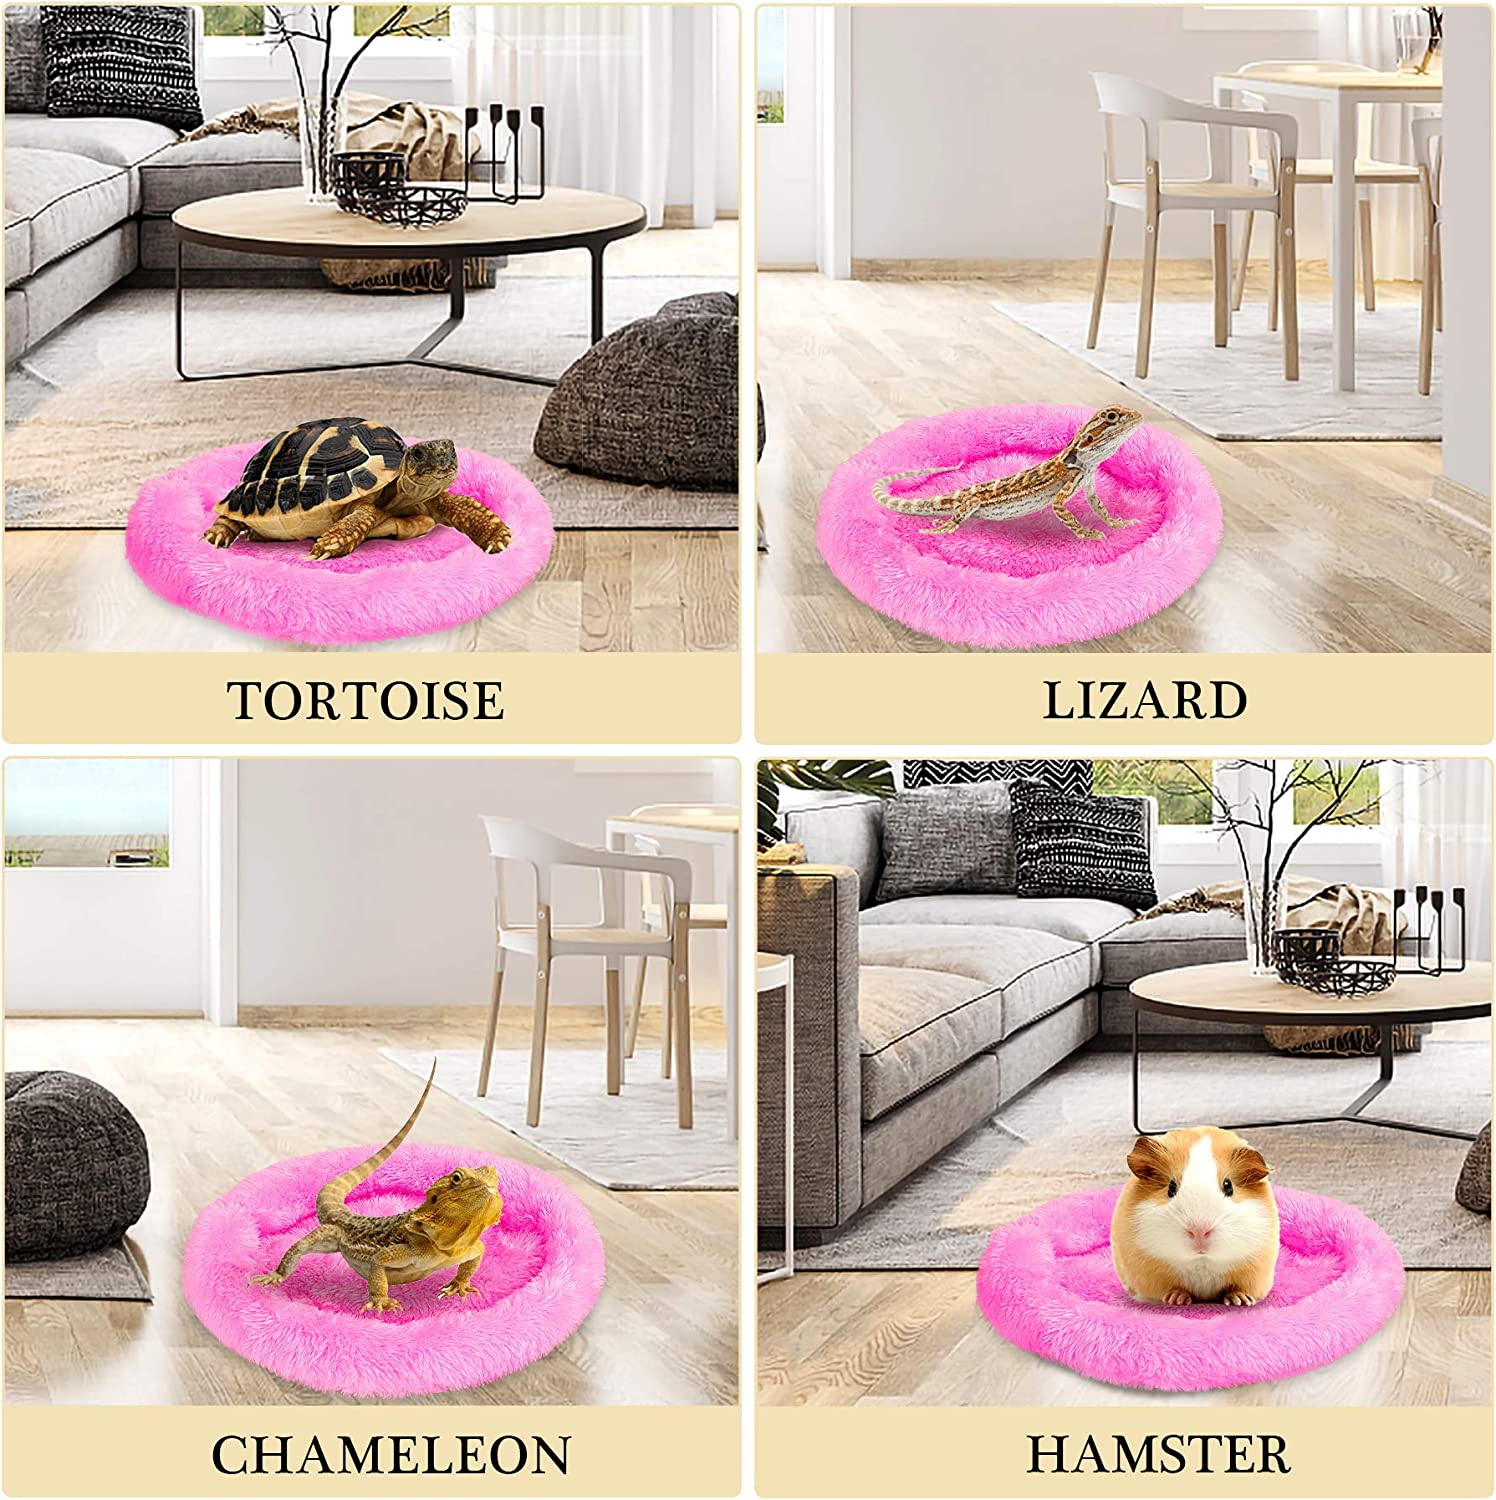 Rose Red FEBSNOW Guinea Pig Beds Hamster Bed Hedgehog Bed for Hamster//Hedgehog//Squirrel//Tortoise//Lizard and Other Small Animal